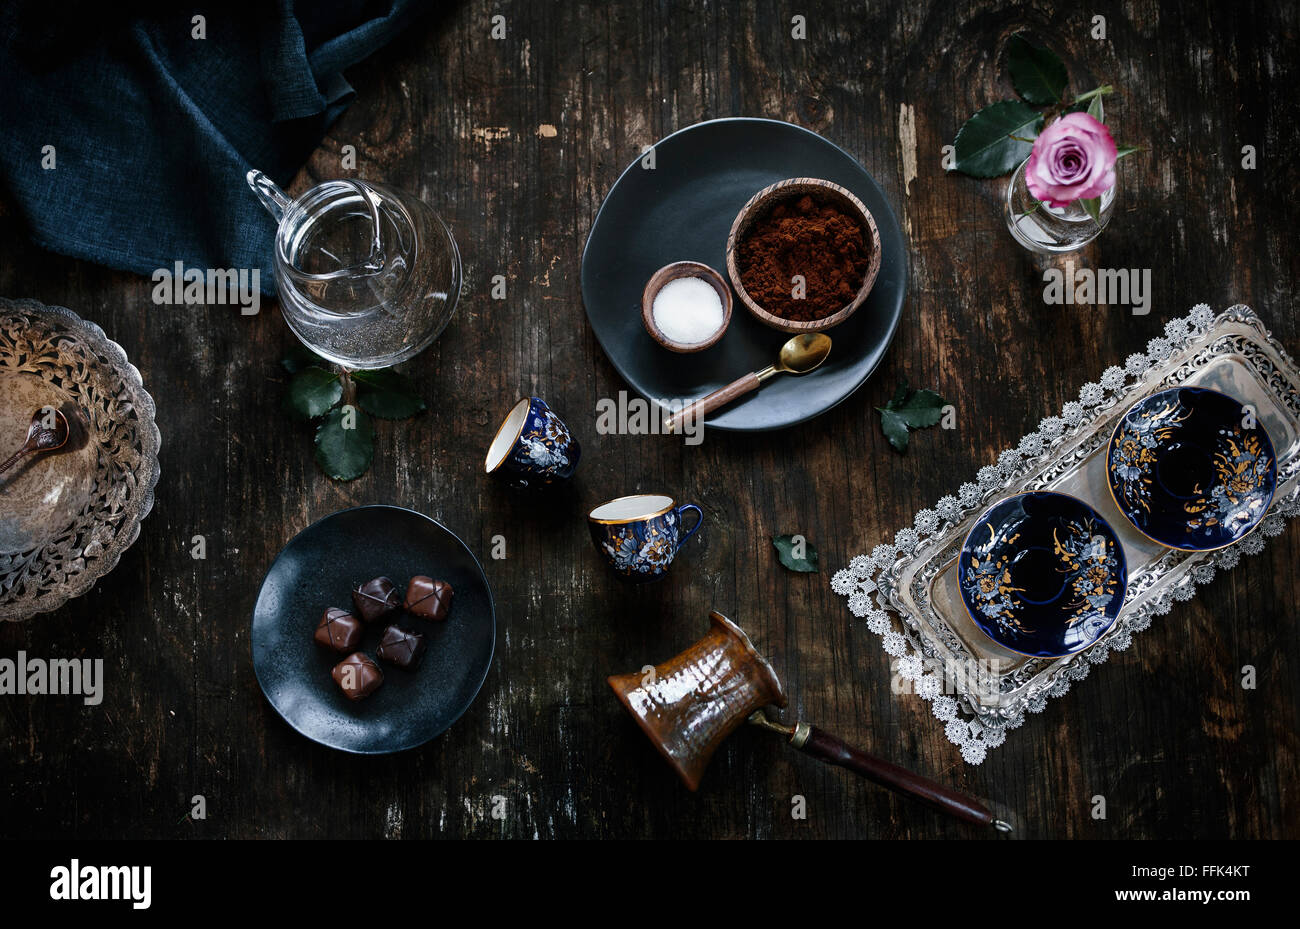 Ingredients for Turkish Coffee (coffee, sugar, water), coffee cups and traditional coffee pot are displayed on a - Stock Image